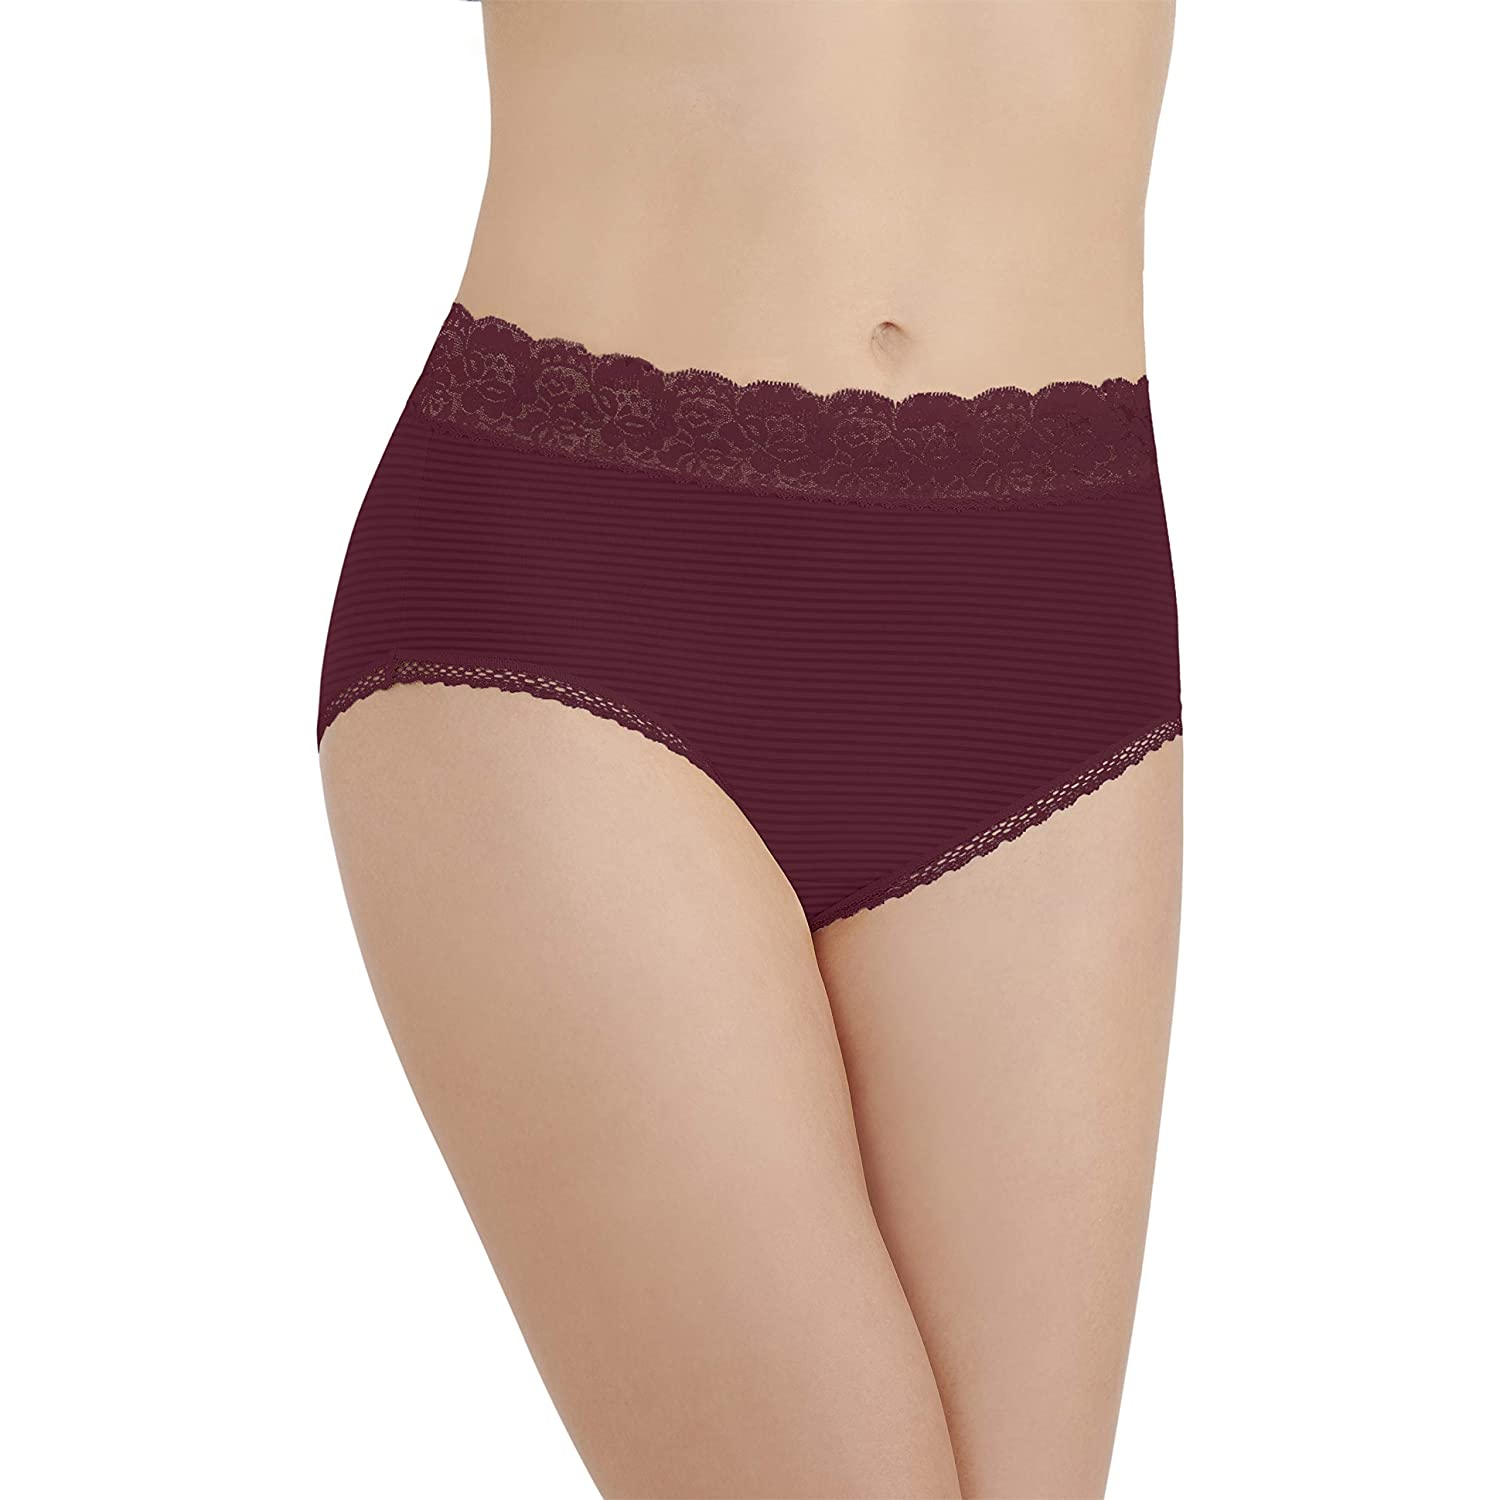 4d2961a5b5e2 Vanity Fair Women's Flattering Lace Brief Panty 13281 at Amazon Women's  Clothing store: